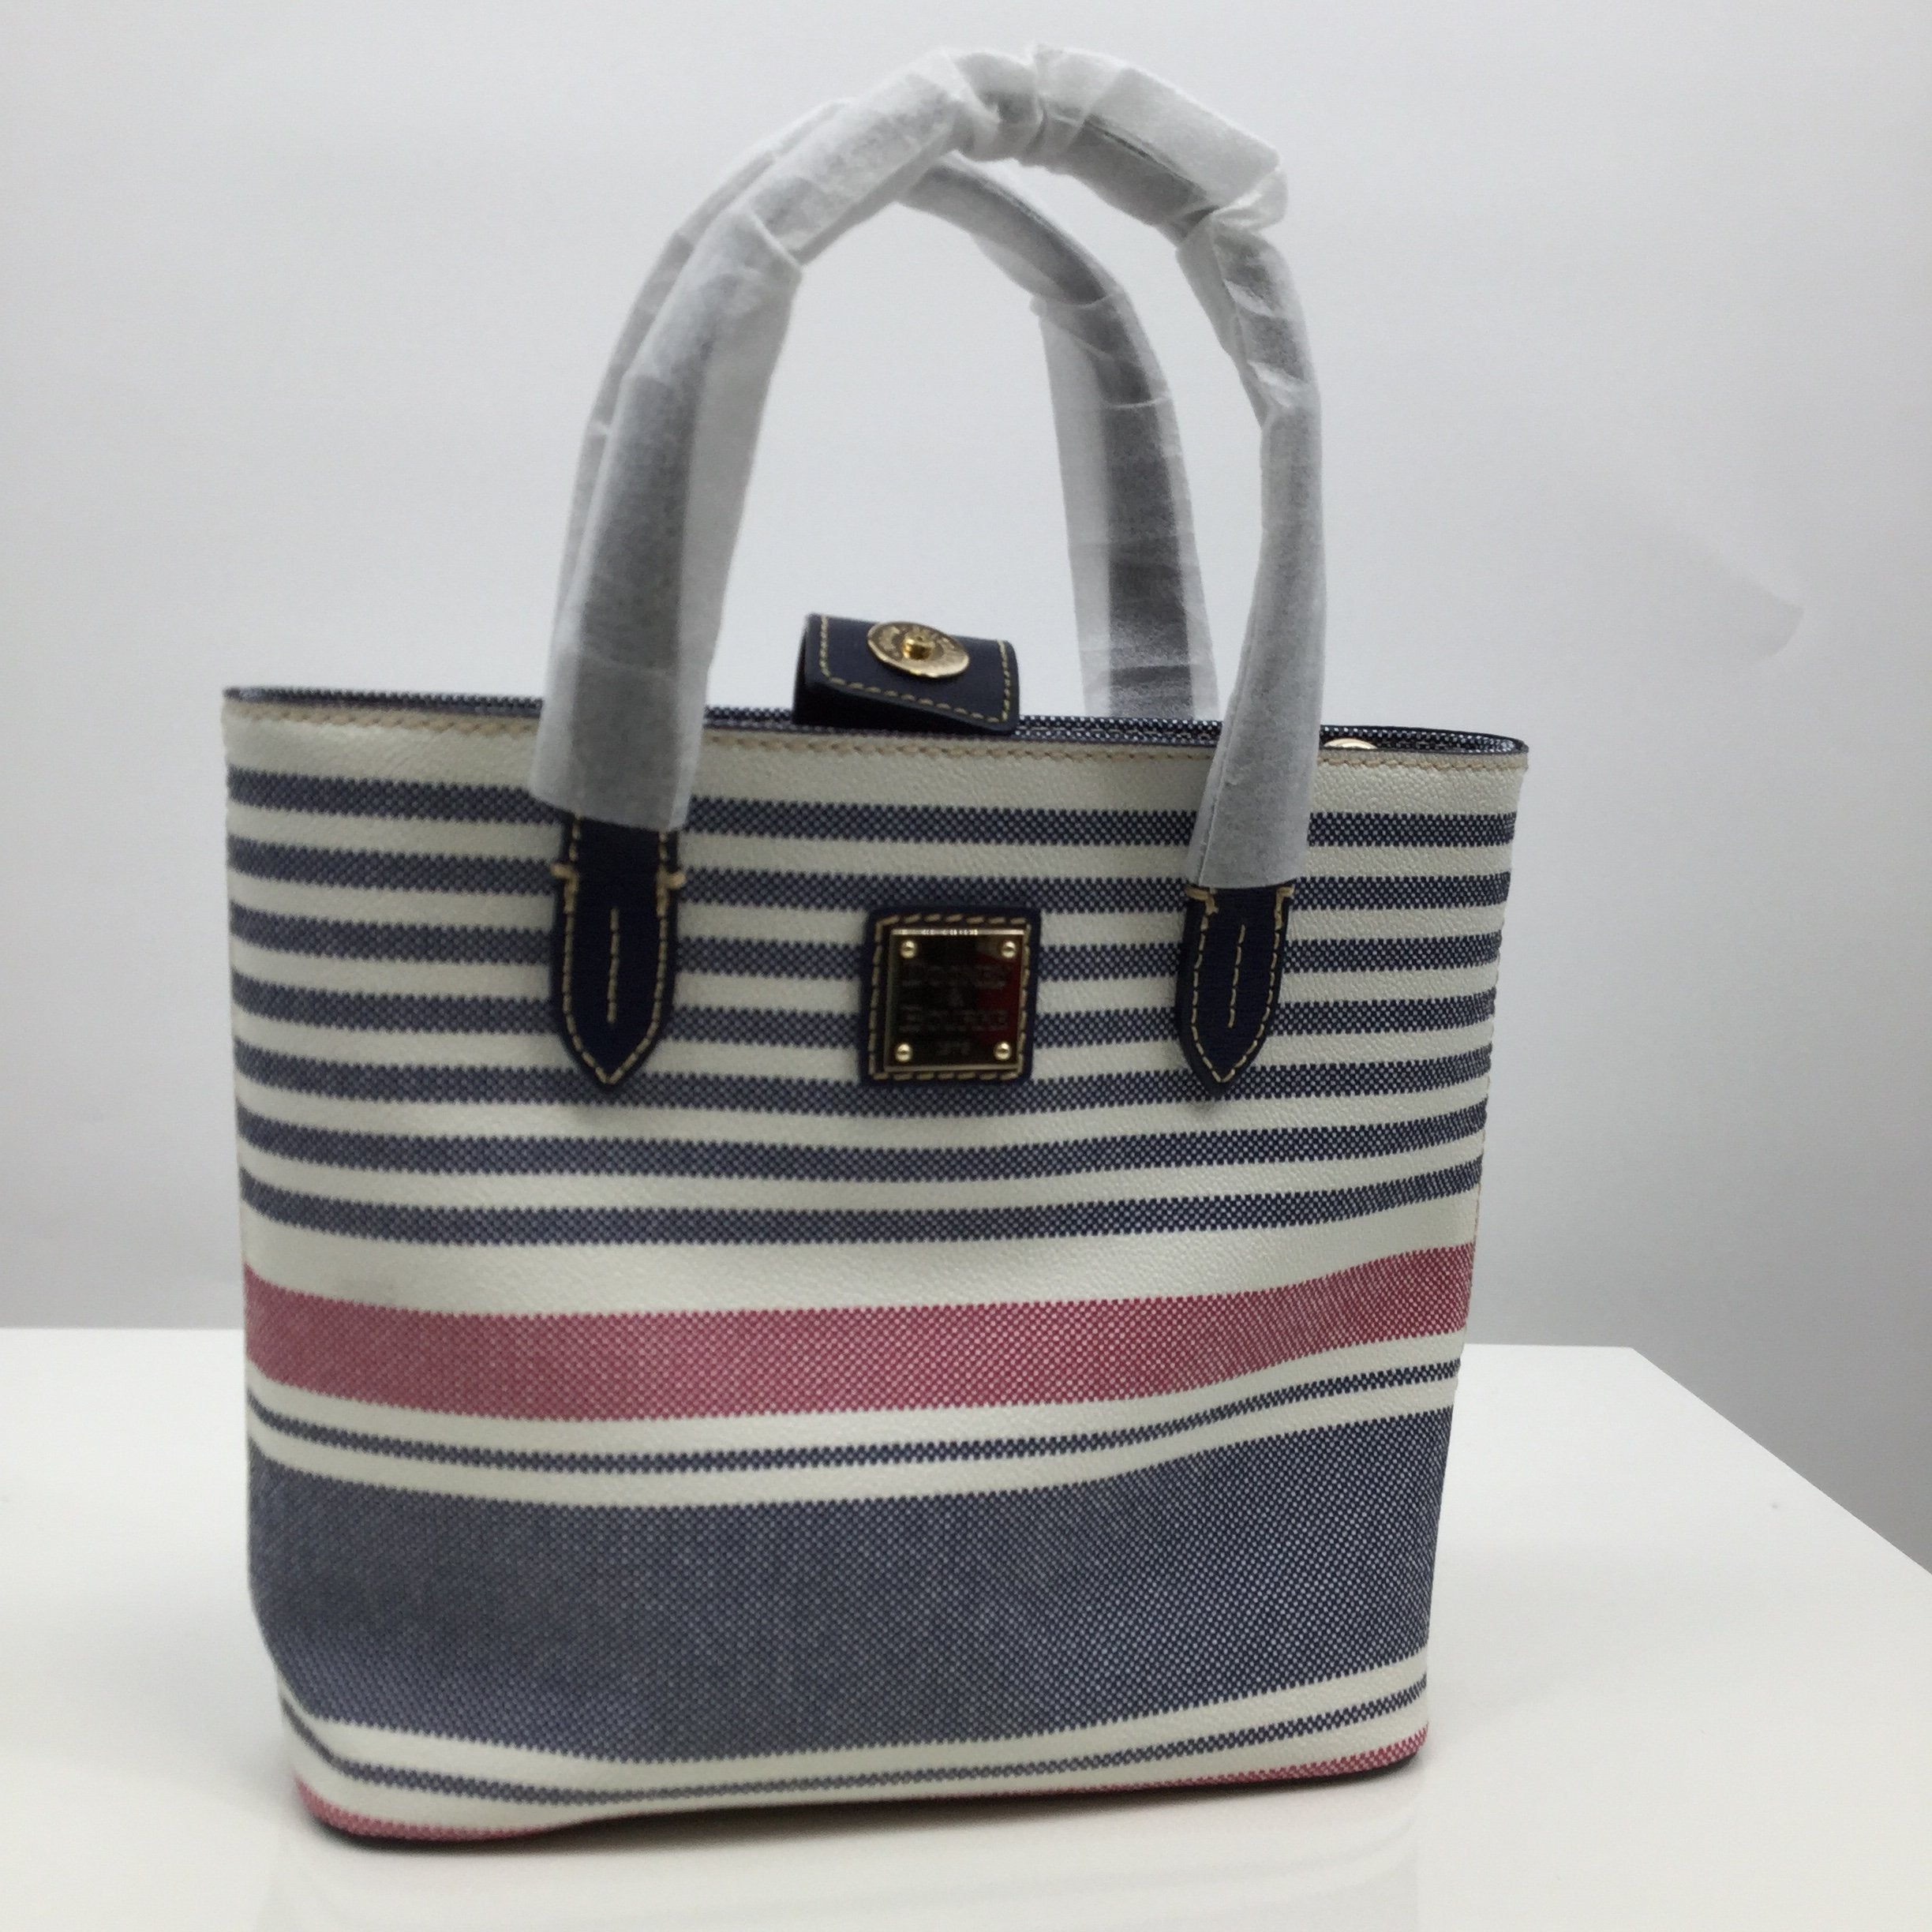 Dooney And Bourke Handbag, Leather, Blue, White, And Red, Small - <P>THIS CUTE DOONEY AND BOURKE LEATHER HANDBAG IS A GREAT BAG FOR ANY SEASON. IT IS BRAND NEW WITH TAGS STILL ATTACHED! IT IS IN PERFECT CONDITION.</P>